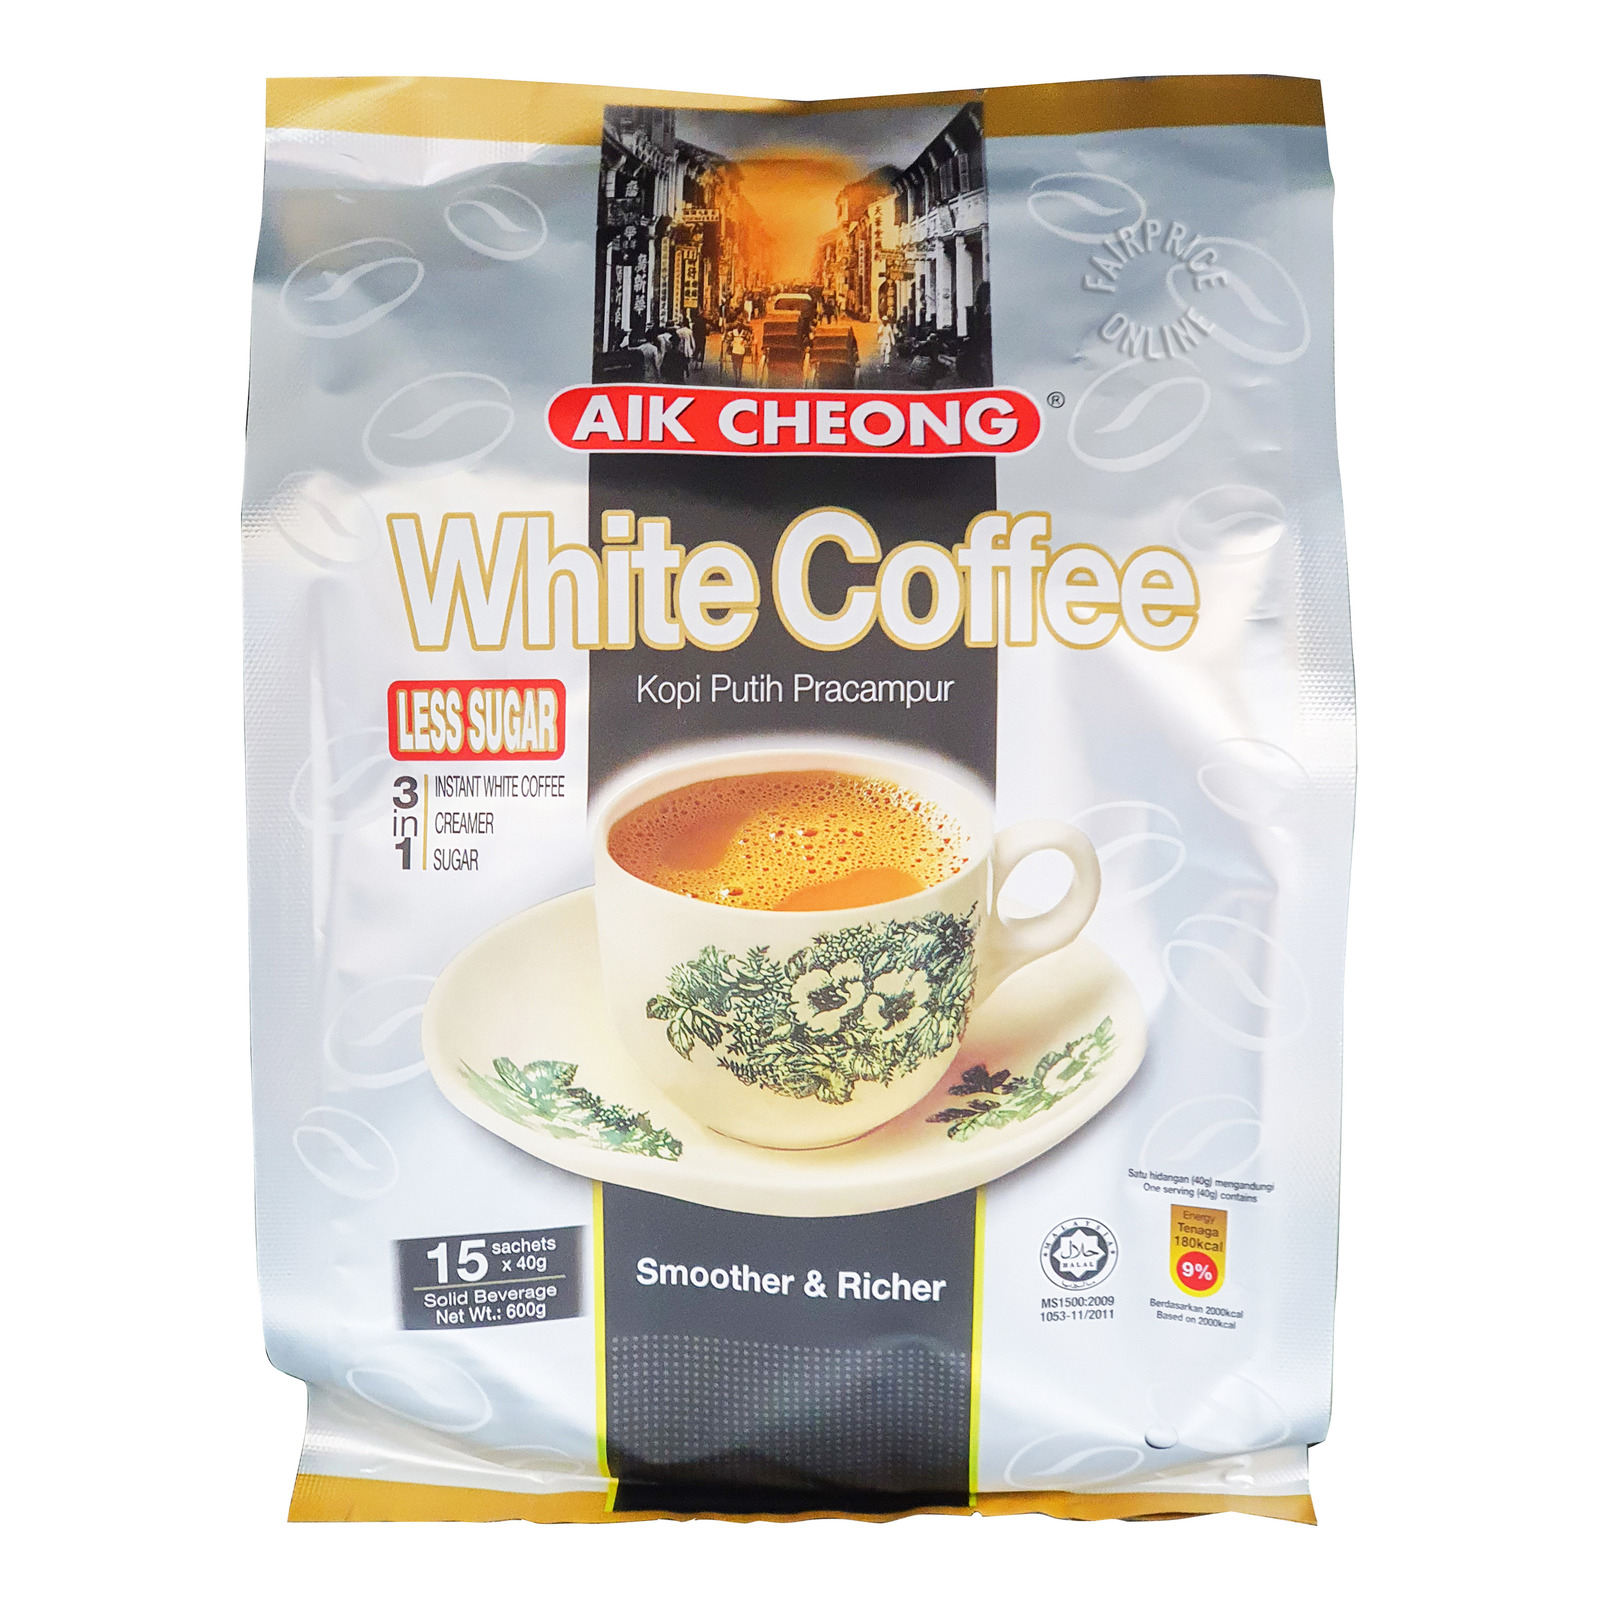 Aik Cheong 3 in 1 Instant White Coffee - Tarik (Less Sugar)